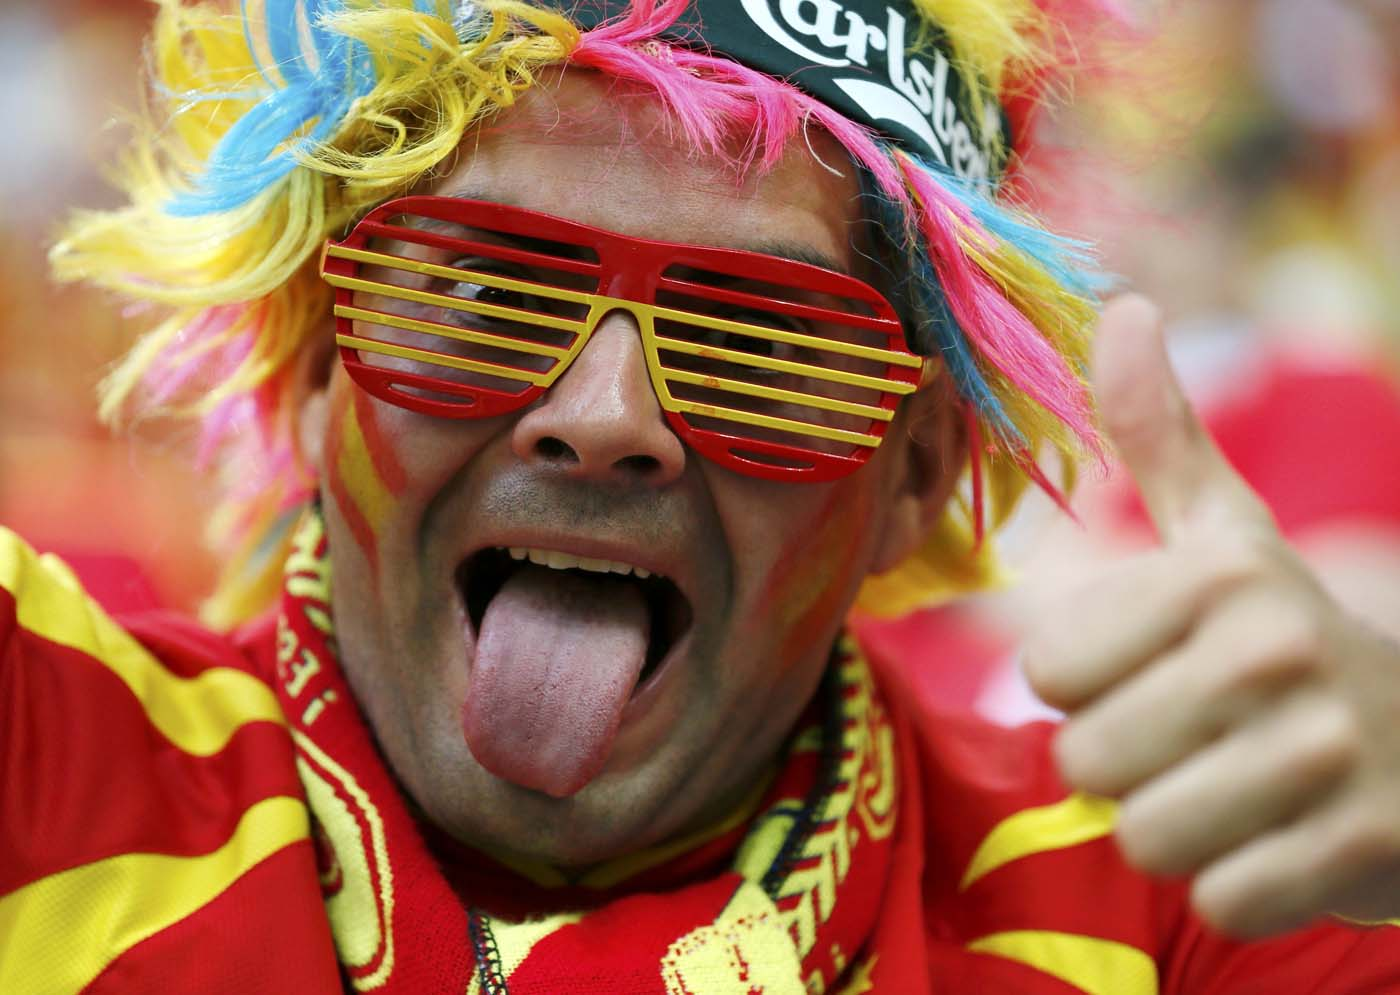 A Spain's soccer fan with sunglasses in colors of the national flag cheers as he waits for the start of the Group C Euro 2012 soccer match against Croatia at the PGE Arena in Gdansk, June 18, 2012. (Pascal Lauener/Reuters)